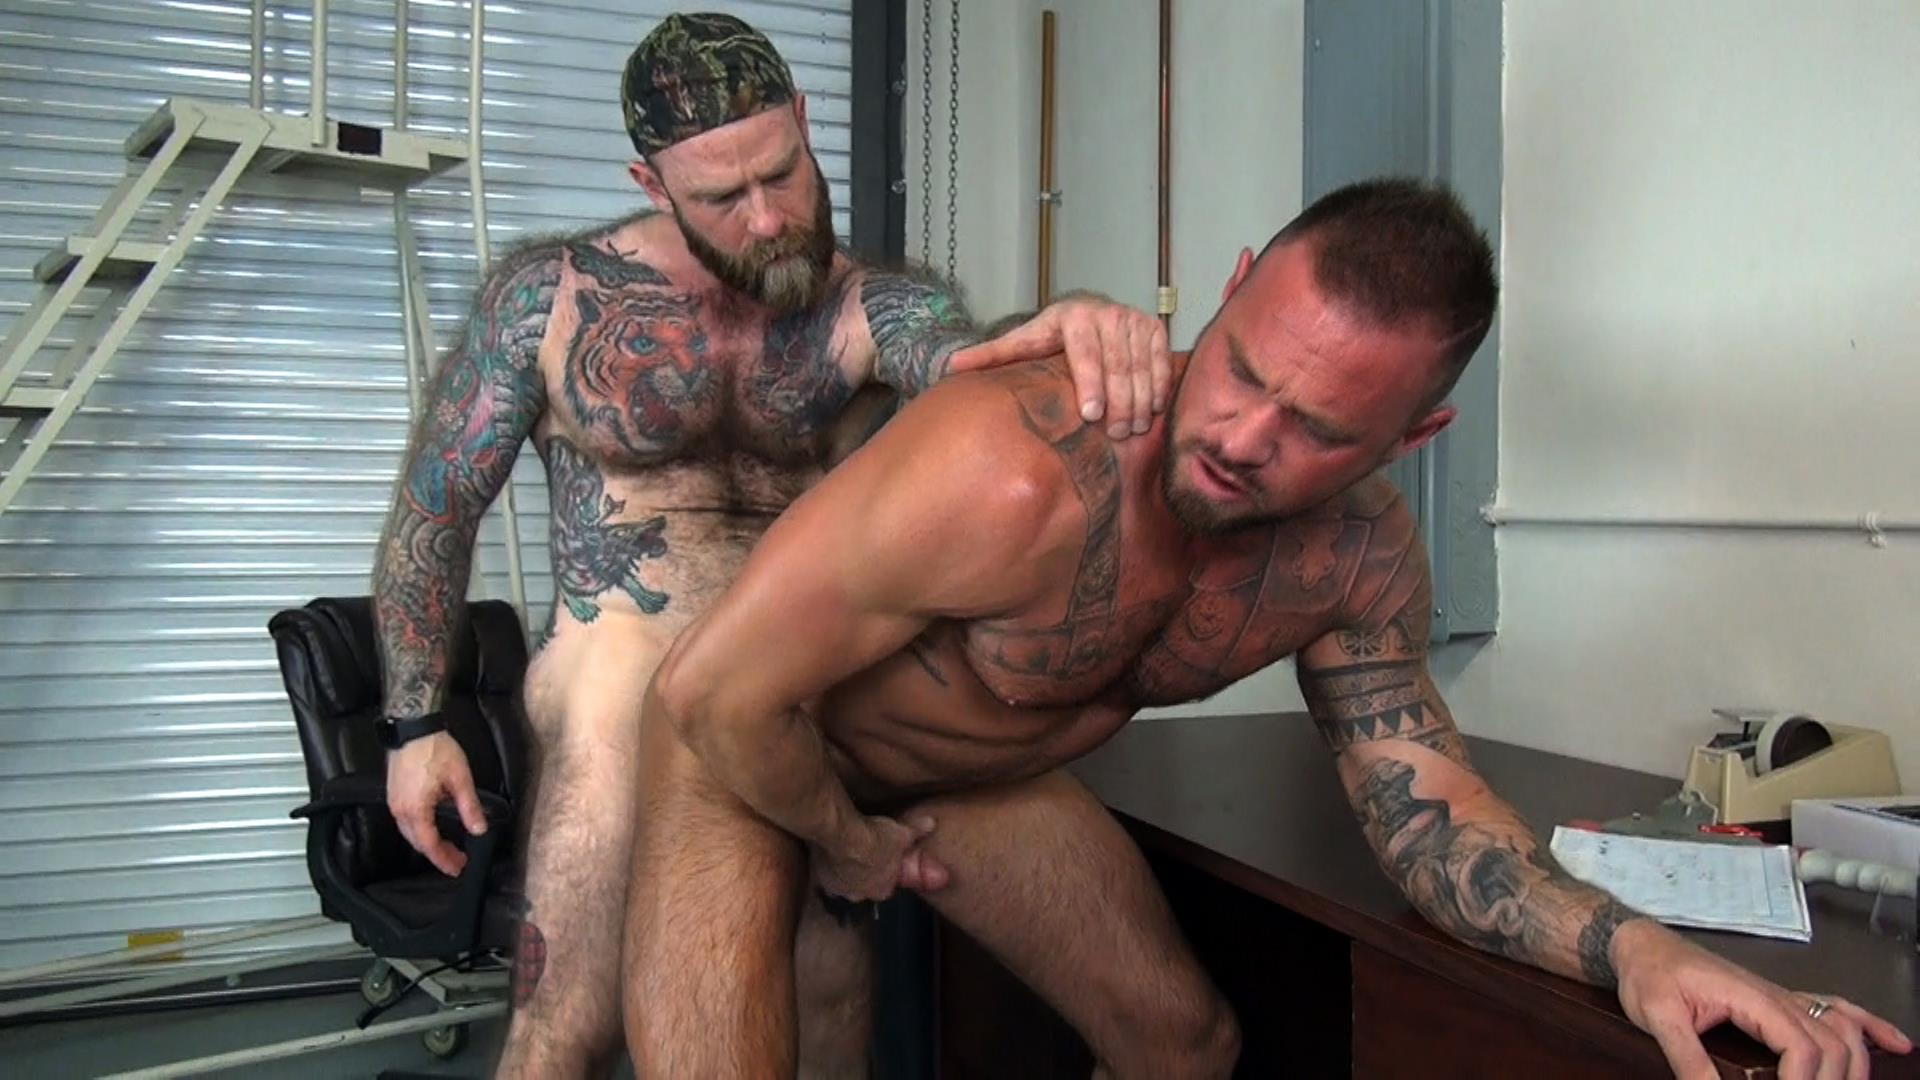 Raw-Fuck-Club-Jack-Dixon-and-Michael-Roman-Hairy-Muscle-Daddy-Bareback-Gay-Sex-Video-05 Taking A Raw Ride On Jack Dixon's Big Fat Daddy Cock